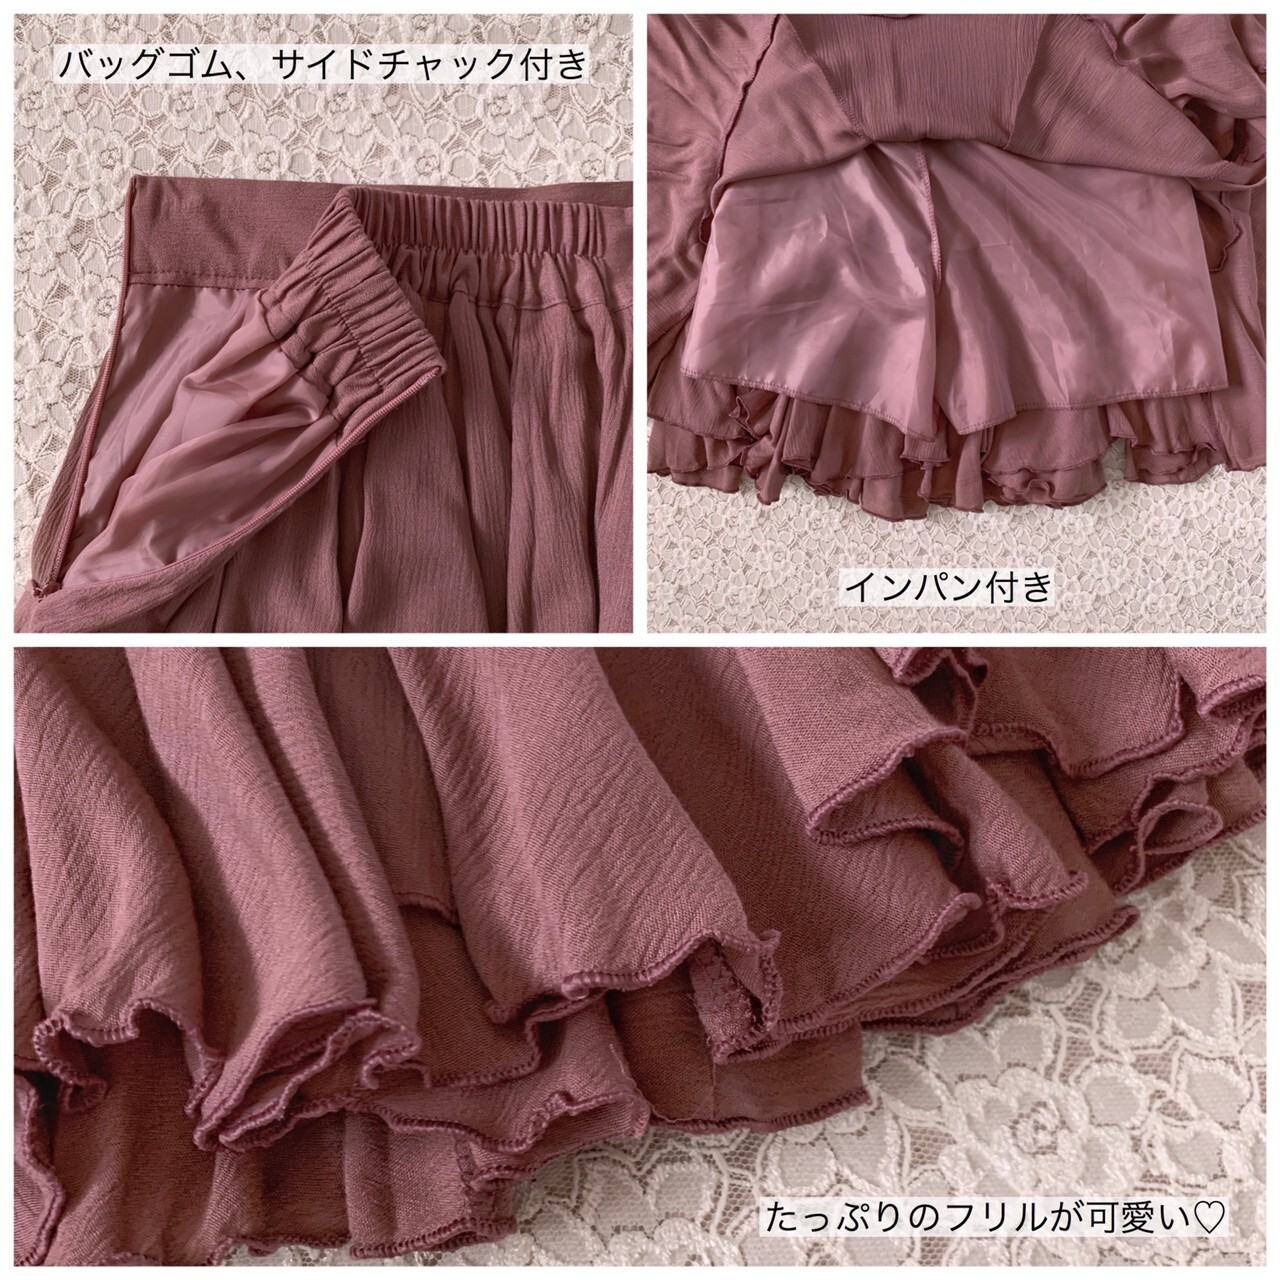 【meltie】millefeuille skirt